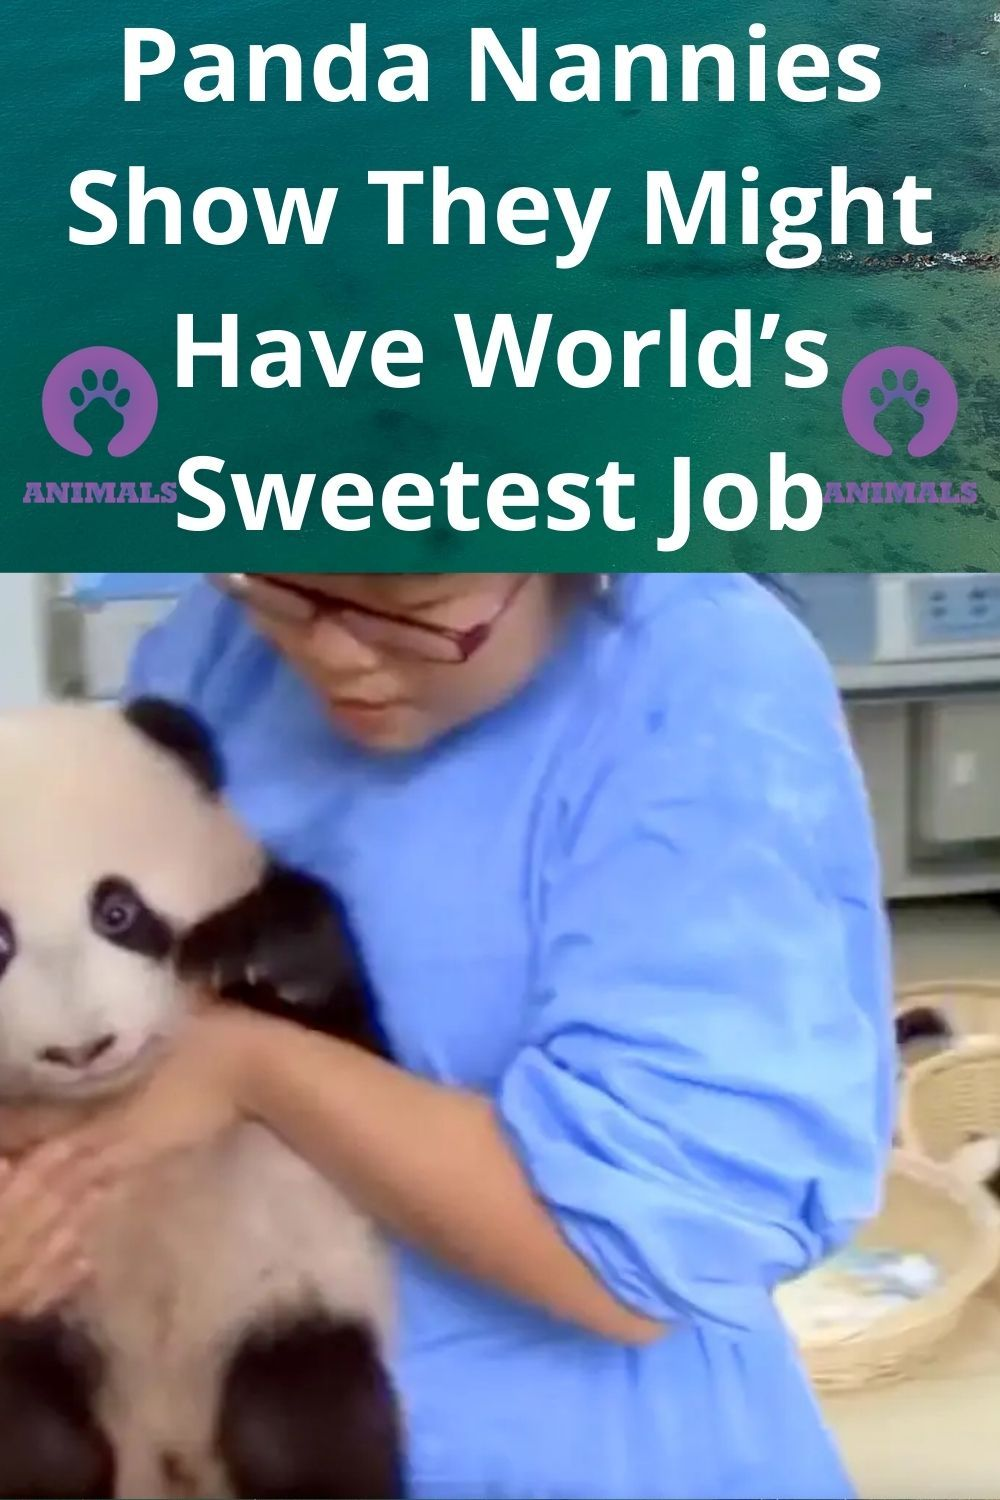 Panda Nanny Melts Hearts With Daily Duties In 2020 Nanny Show Fun Facts Funny